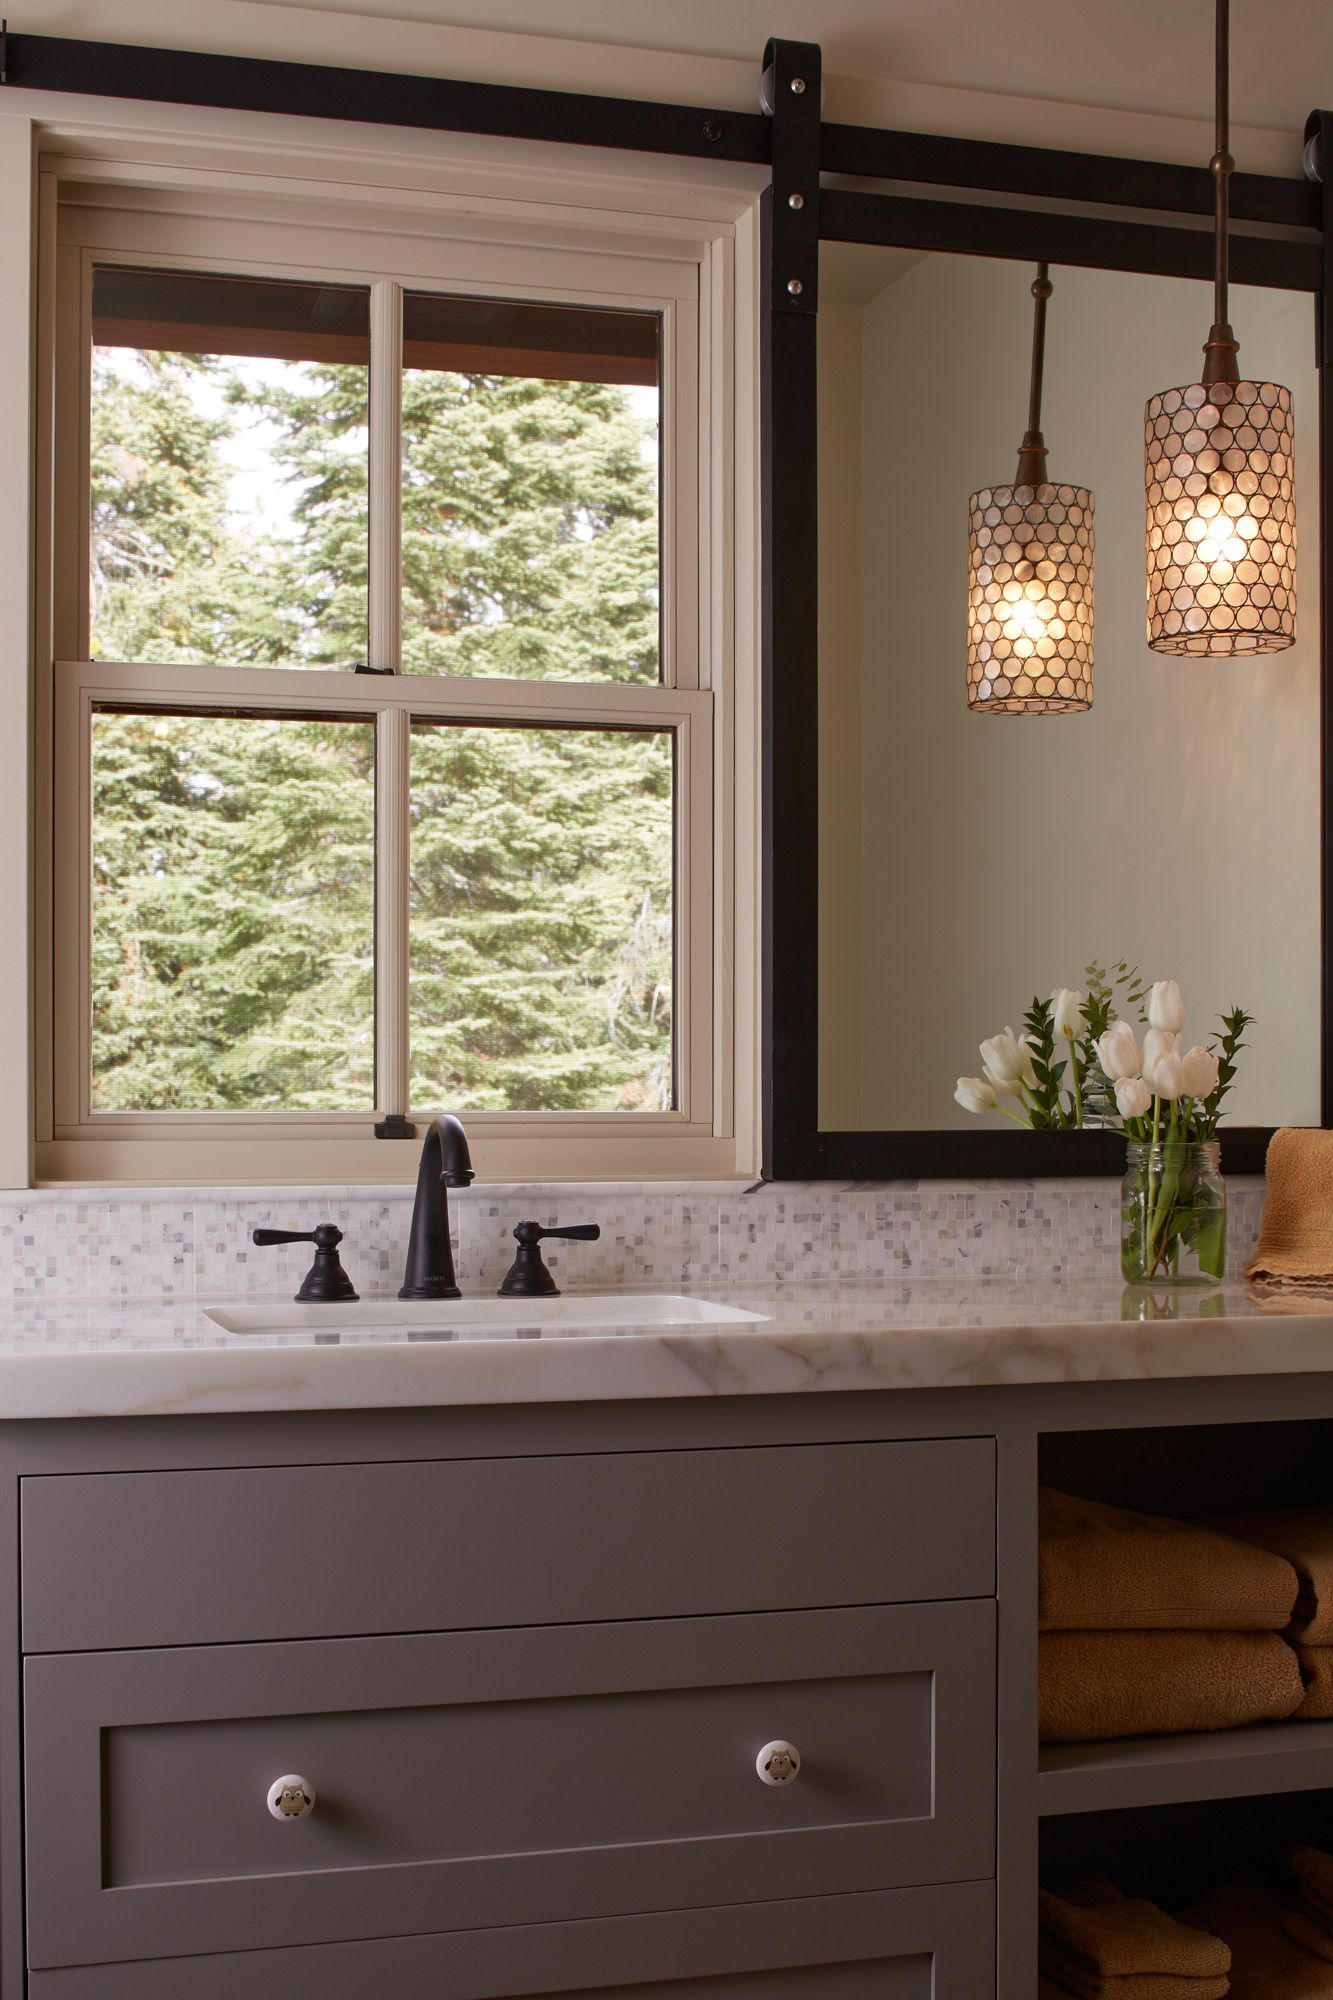 Clever Mirror Solution For Window Over Vanity Sliding Track For